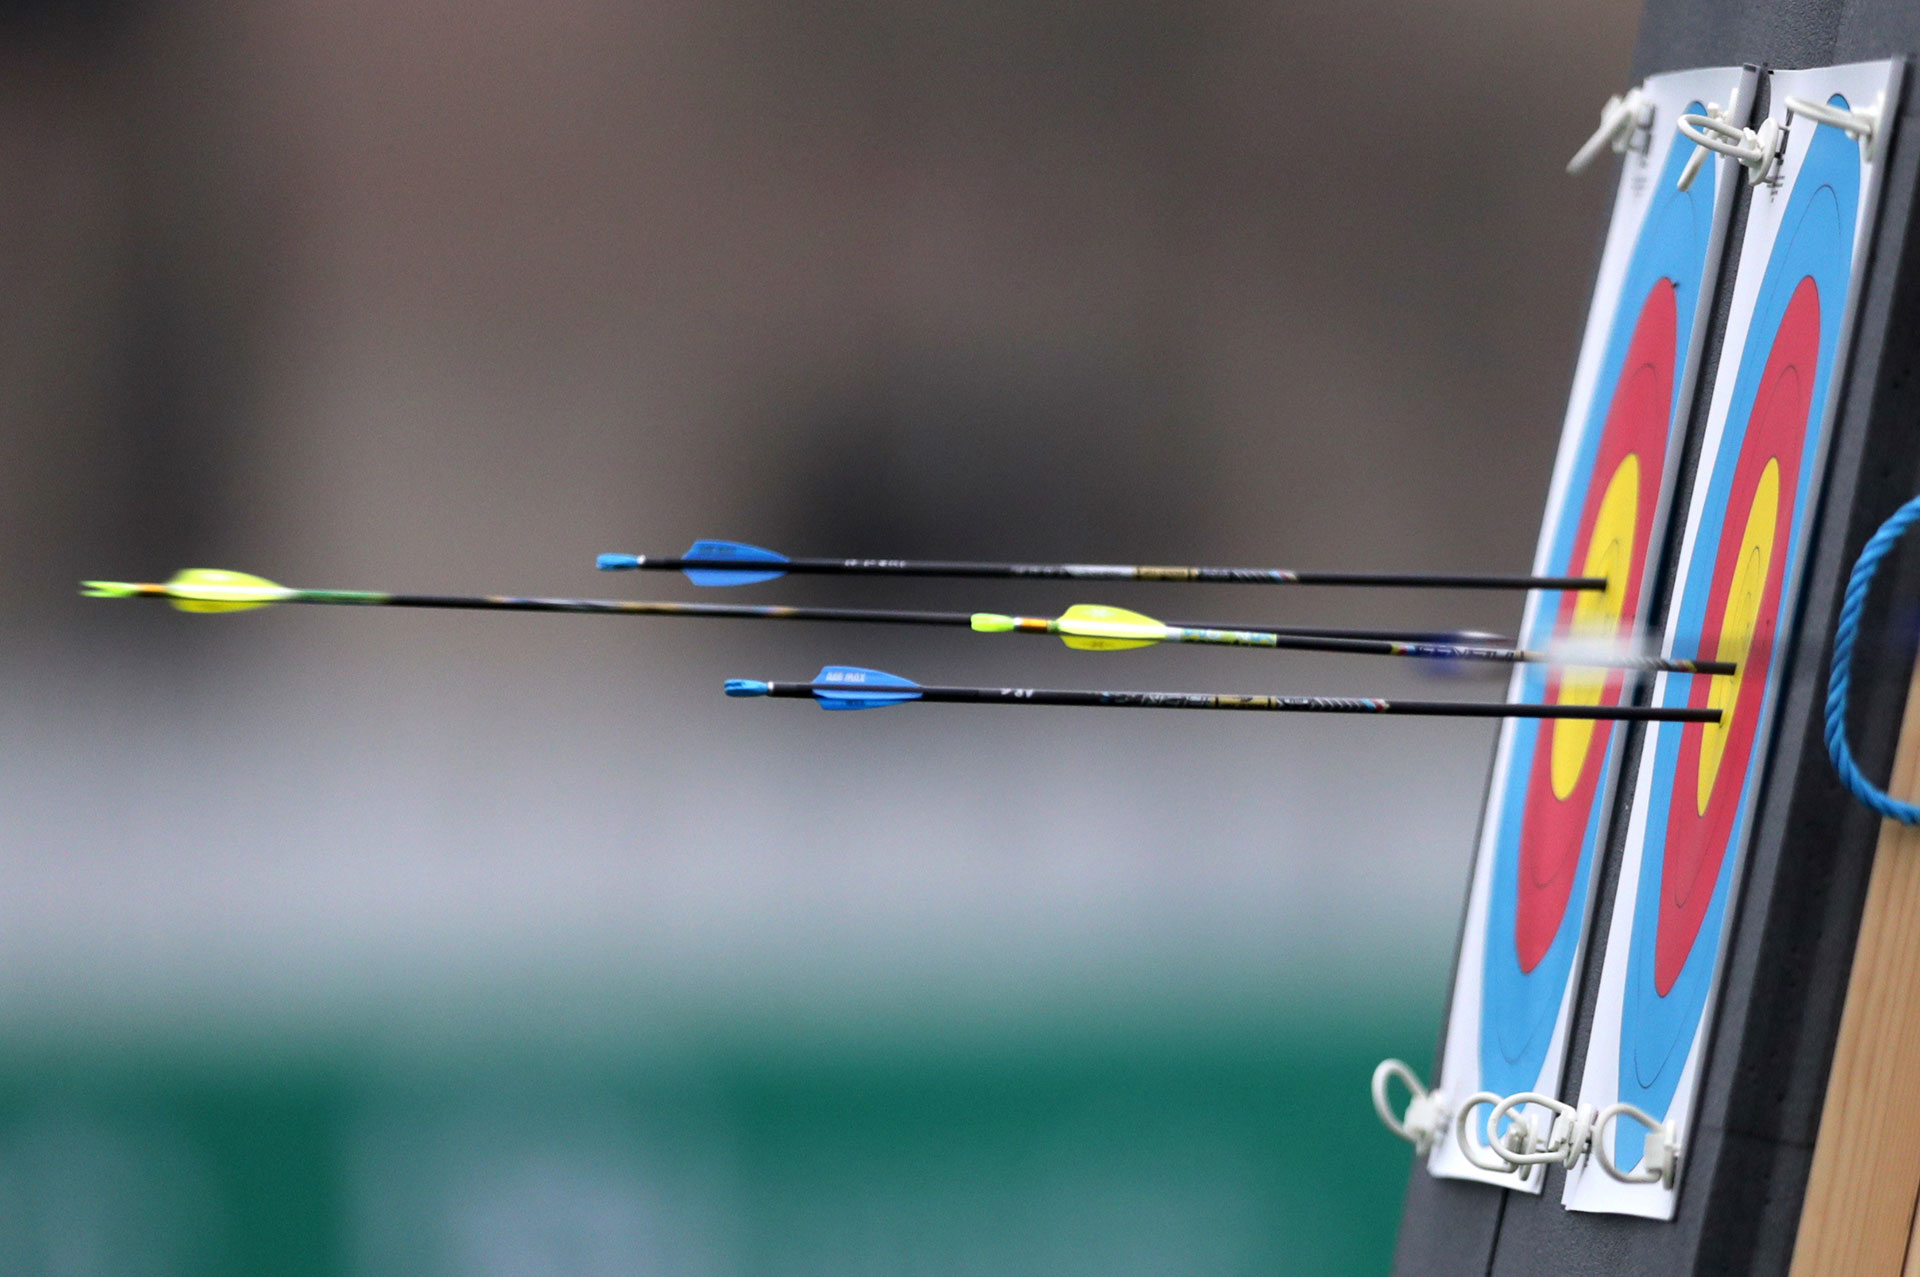 XVIII Pan American Games - Lima 2019 - Archery - Rugby Field, Lima, Peru - August 10, 2019. An arrow hits the target. REUTERS/Guadalupe Pardo